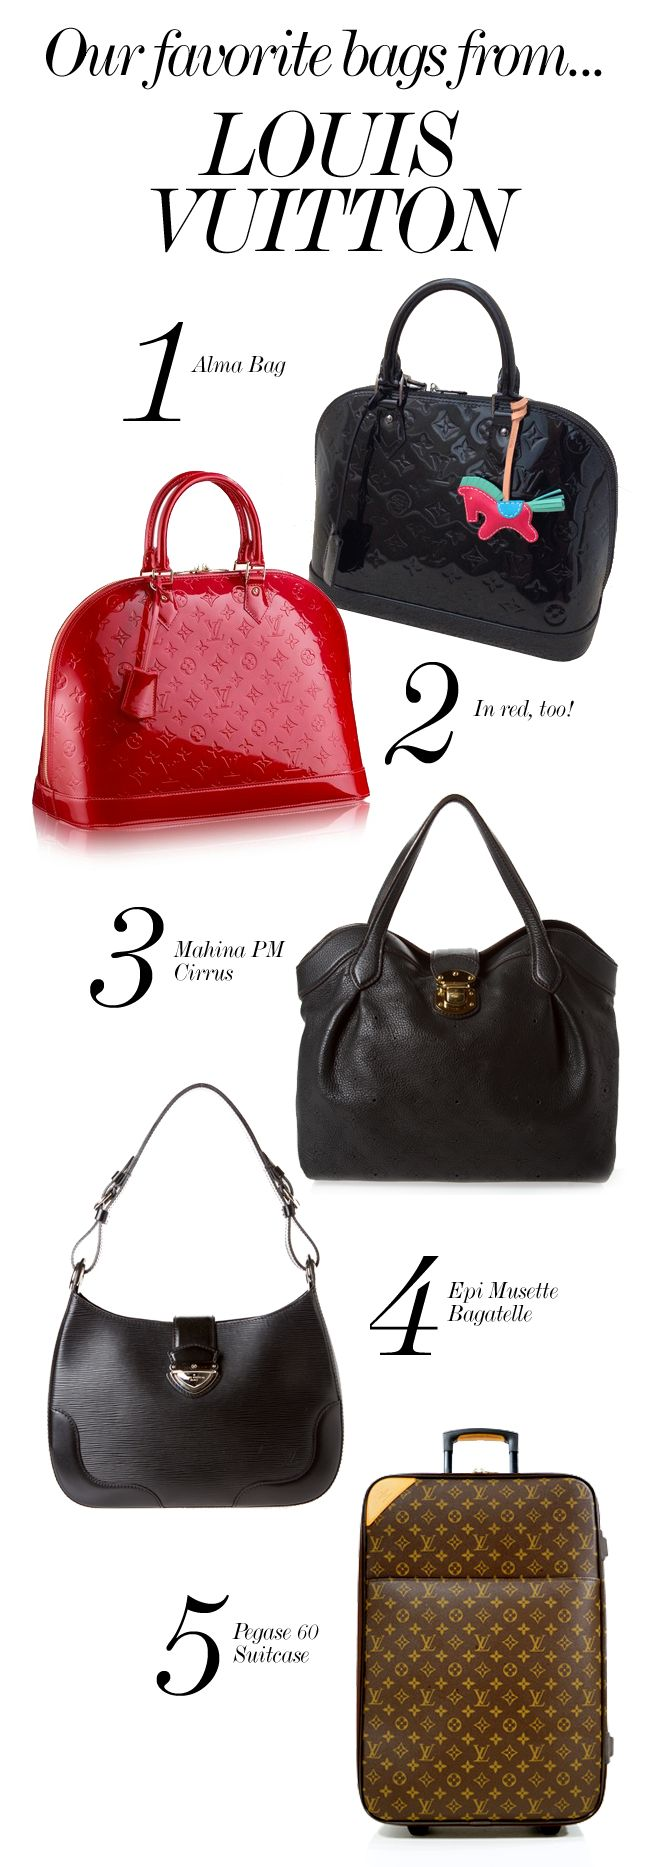 LOUIS VUITTON // Our Favorite Bags